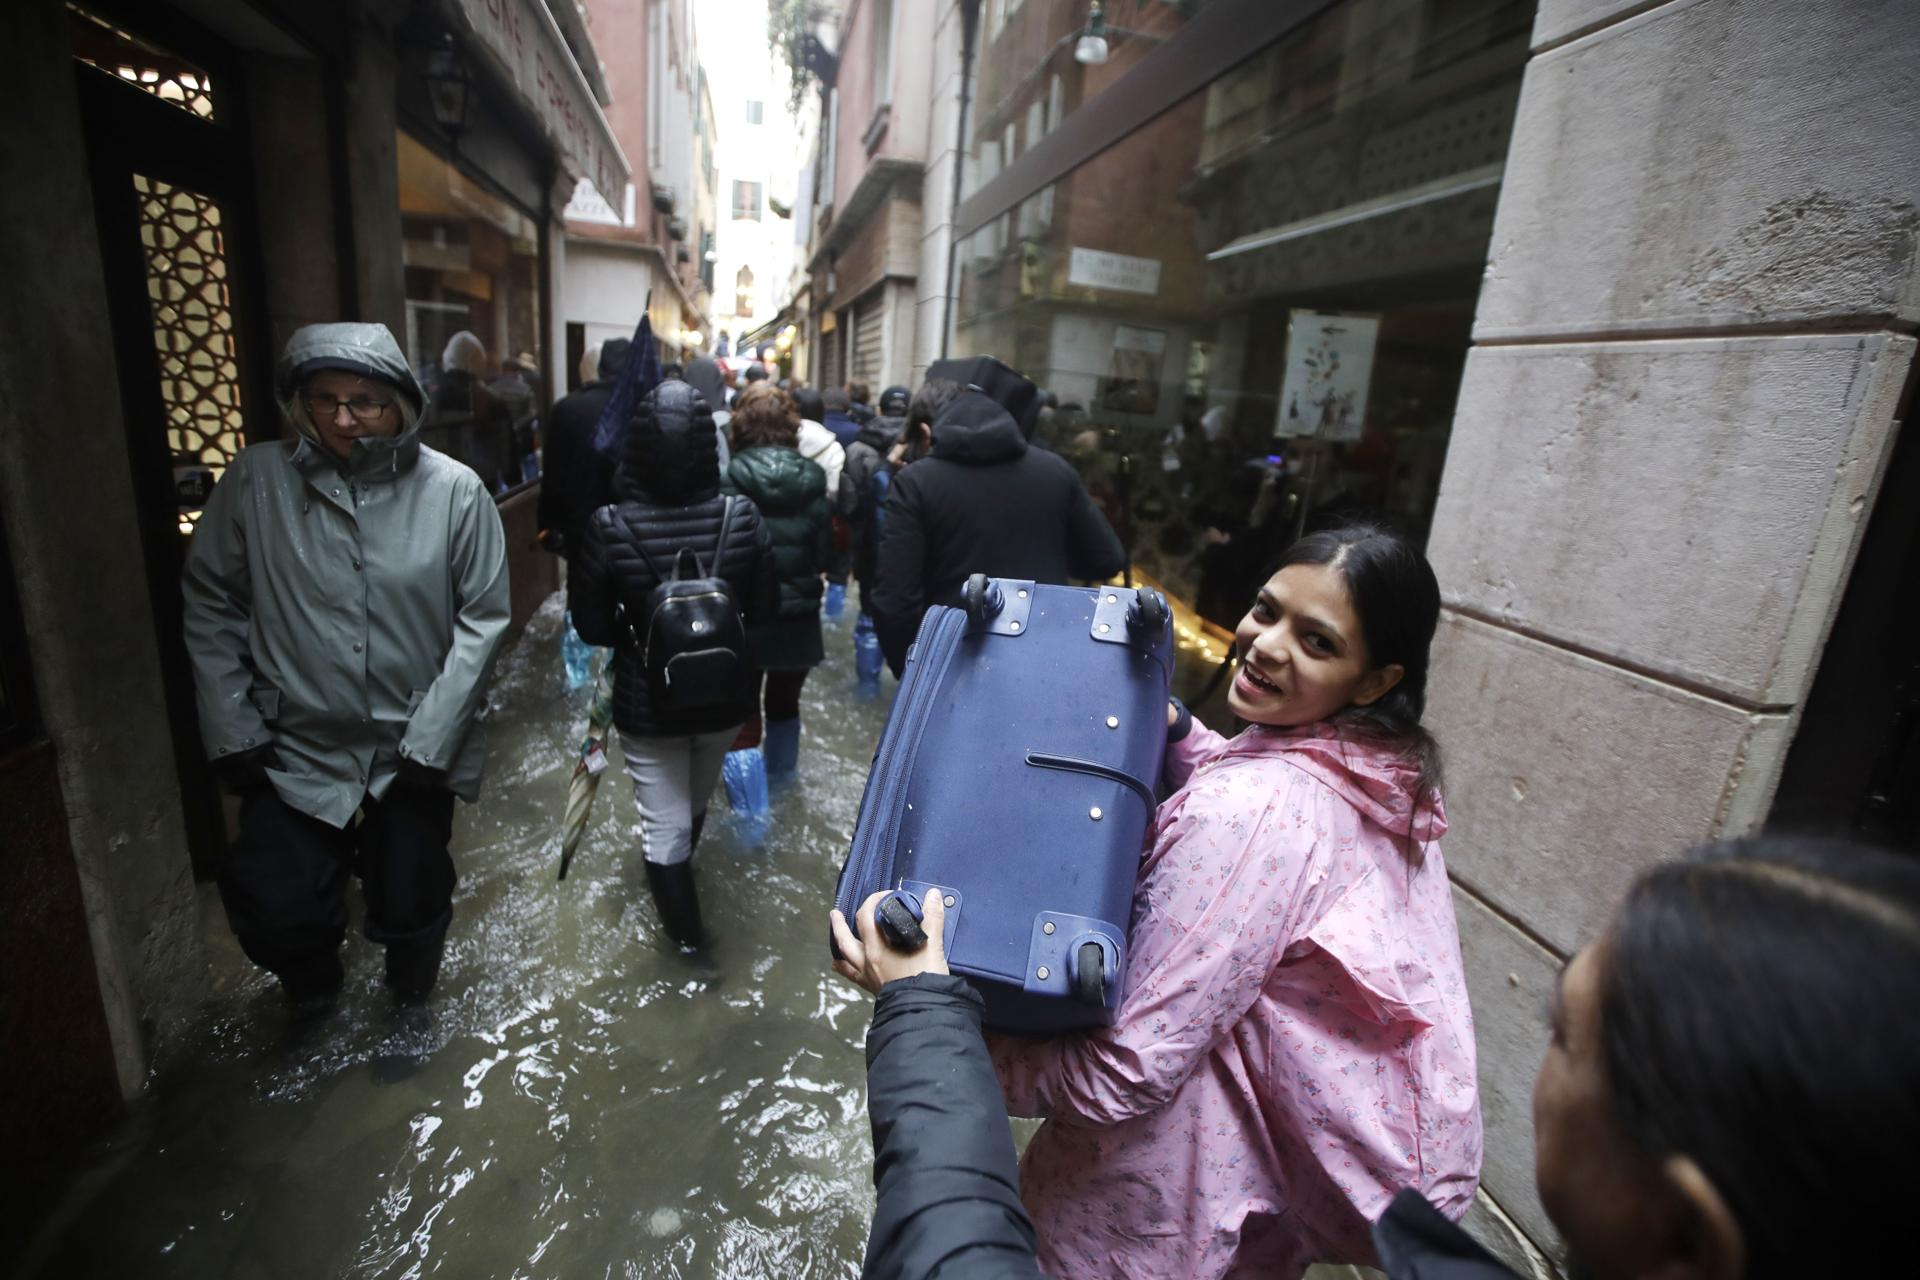 Tourists carried luggage through a flooded Venice, Italy, during high tide.